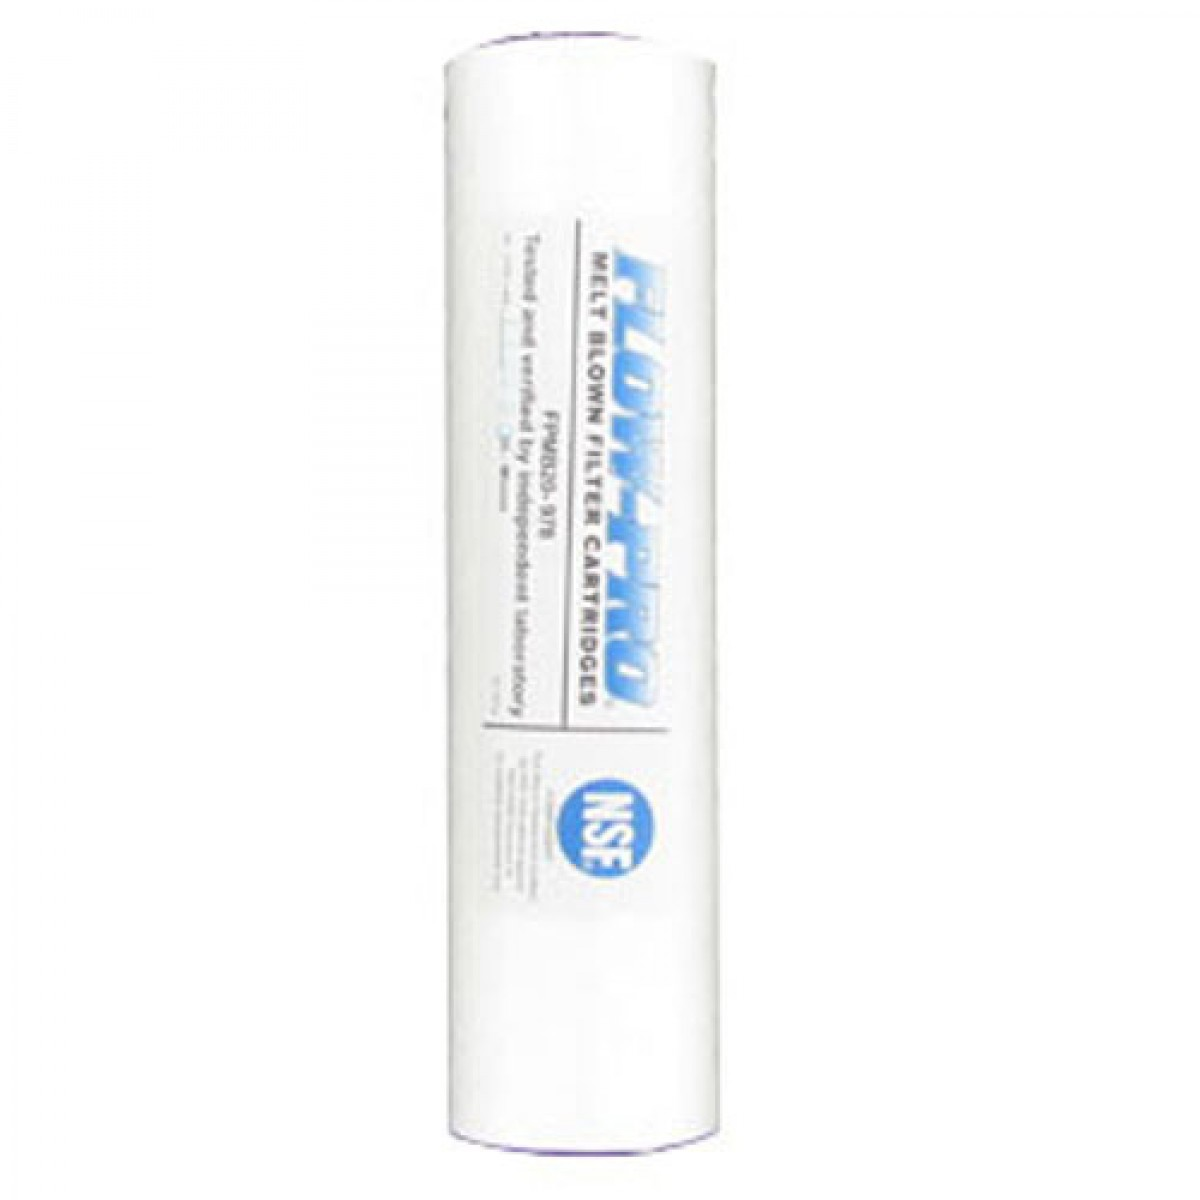 FPMB20 978 Watts Replacement Water Filter – DiscountFilterStore.com #1C63AF